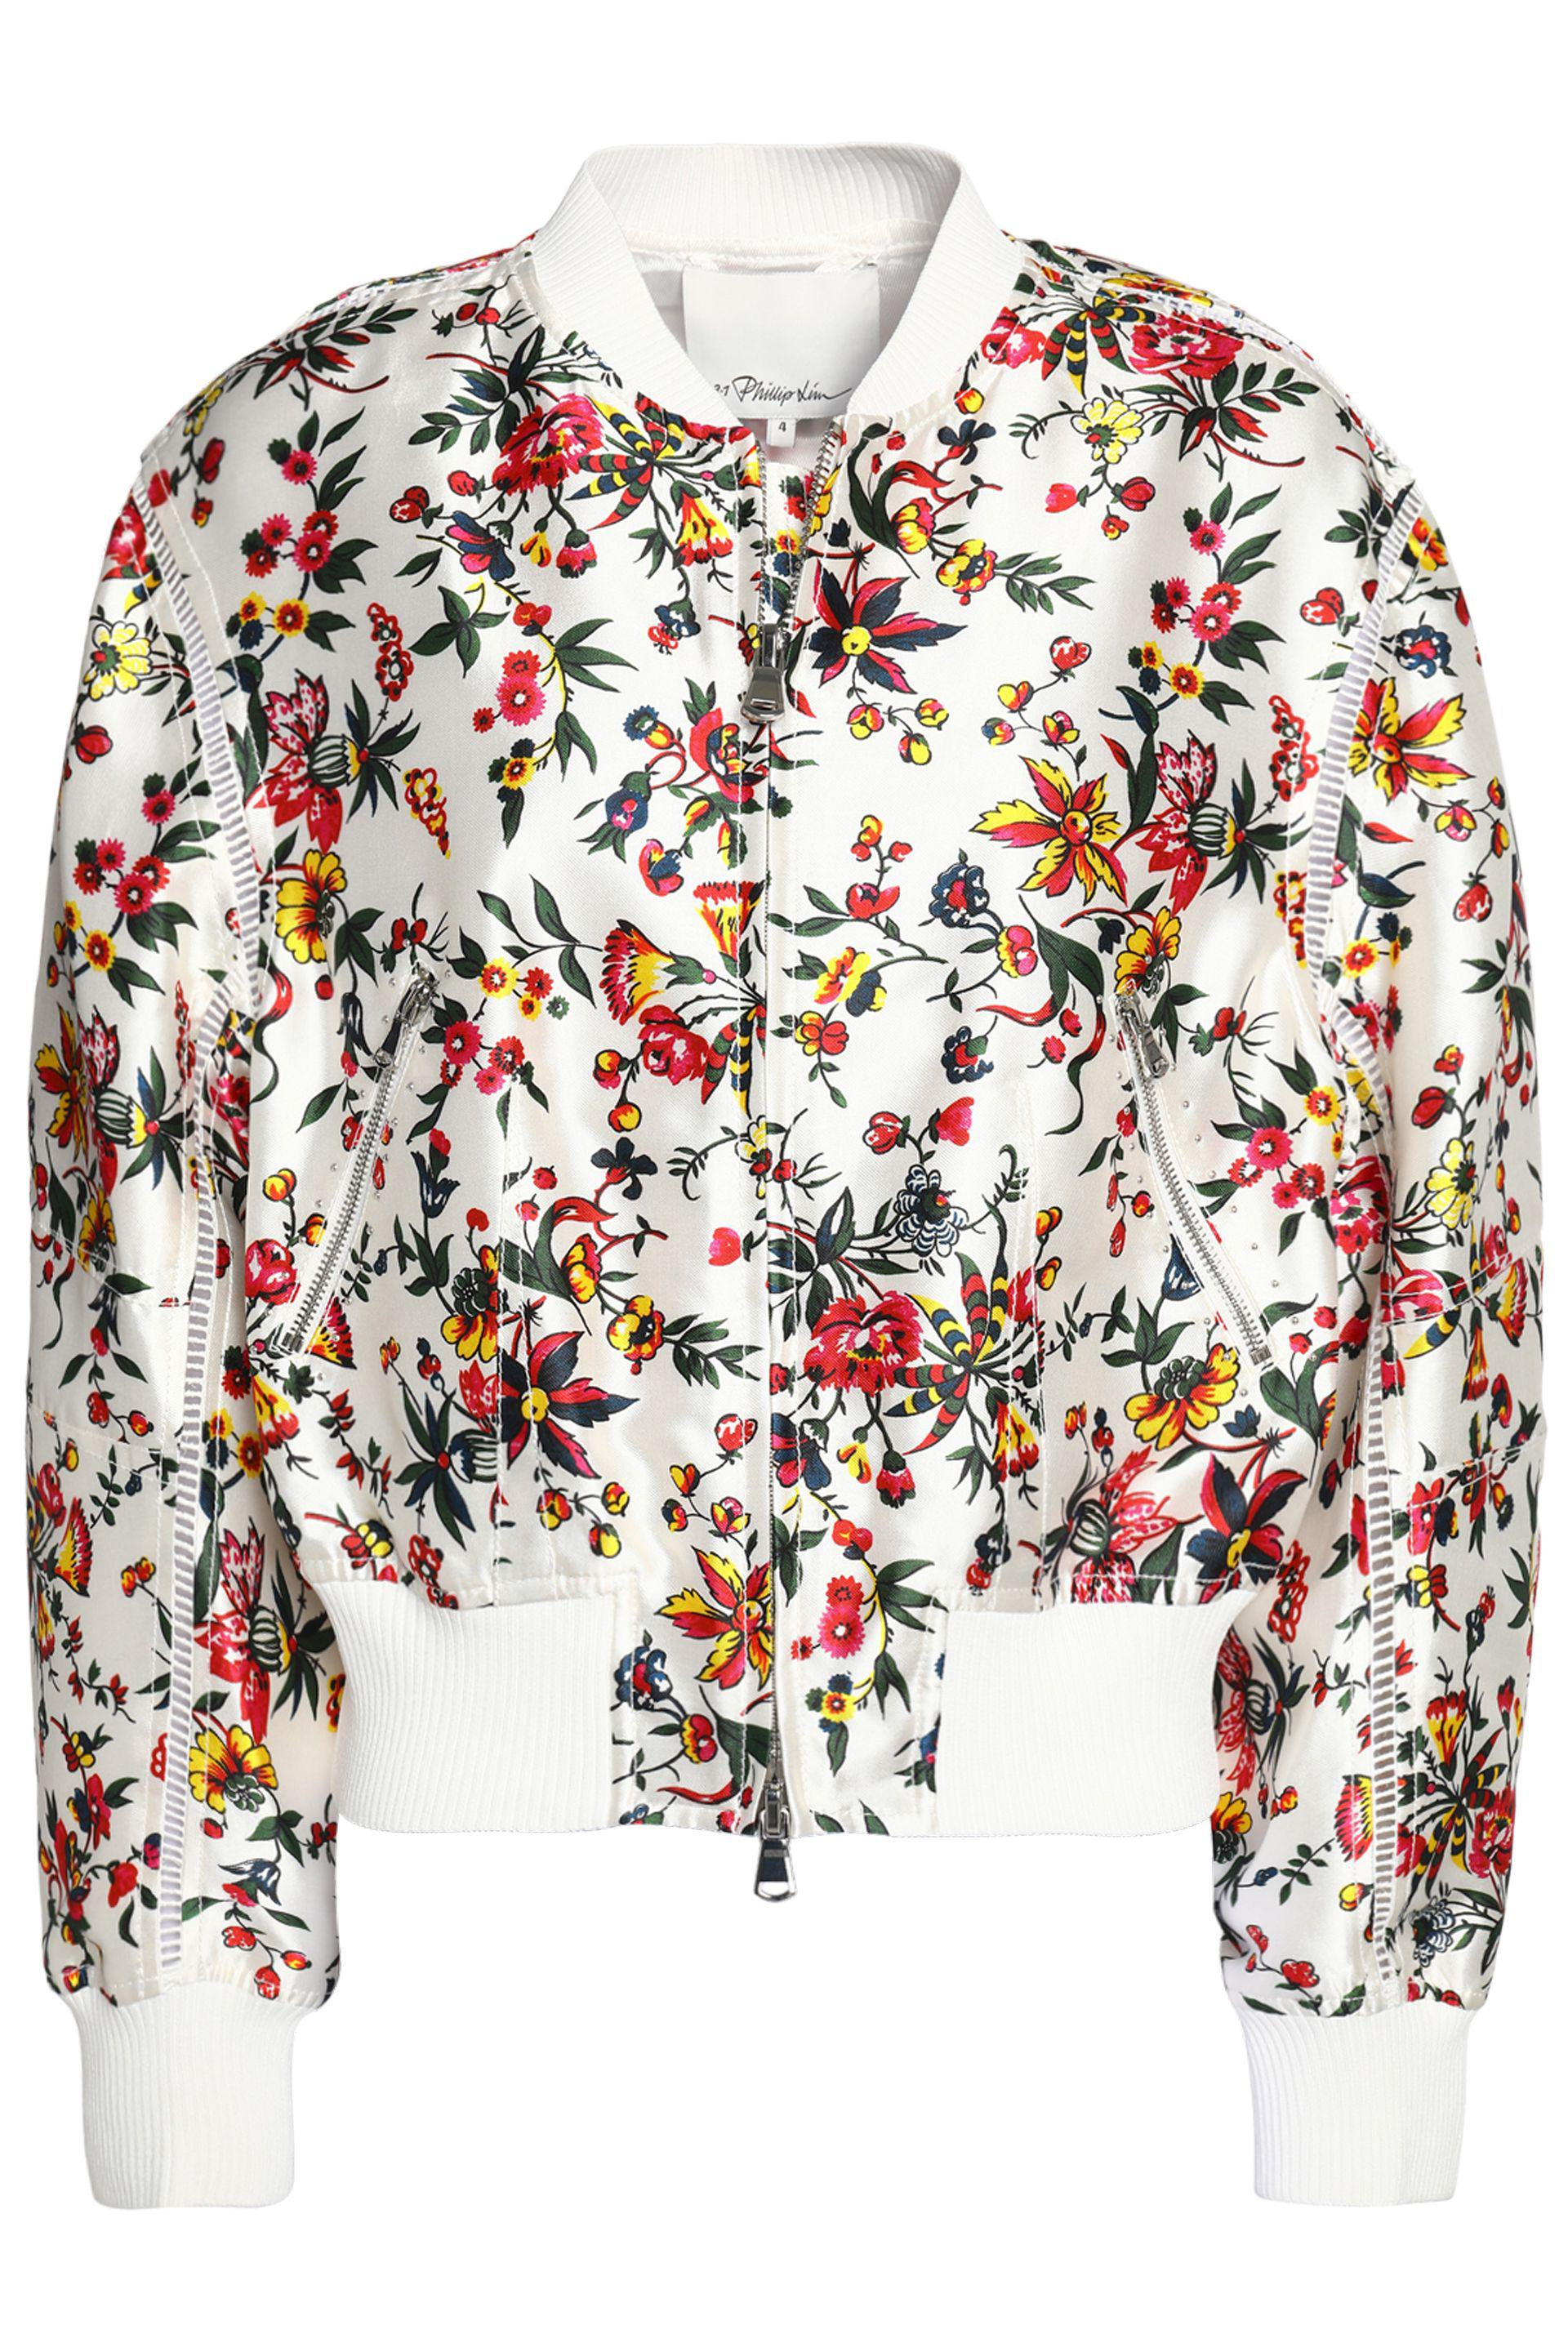 a78293afe Lyst - 3.1 Phillip Lim Floral-print Silk And Cotton-blend Bomber ...